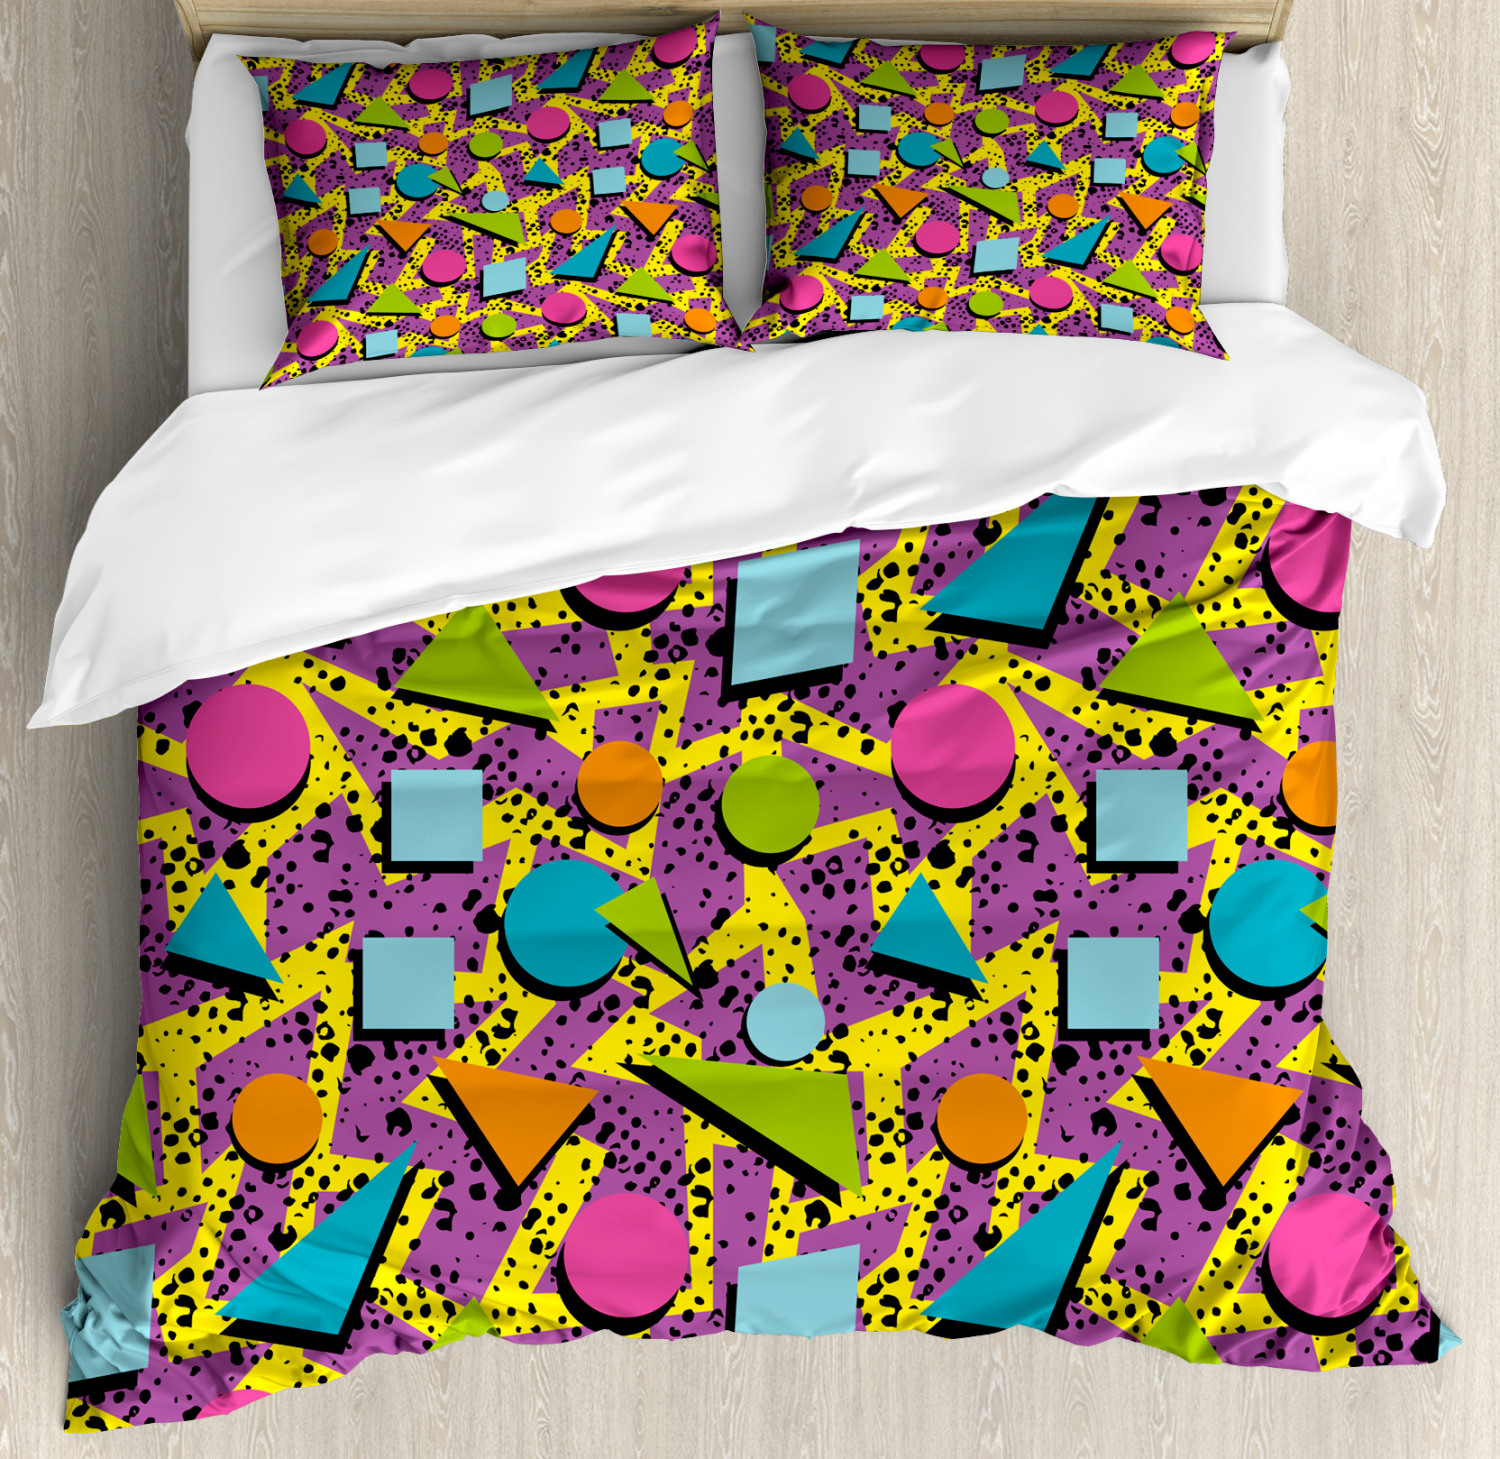 Vintage Duvet Cover Set with Pillow Shams Funky Geometric Style Print